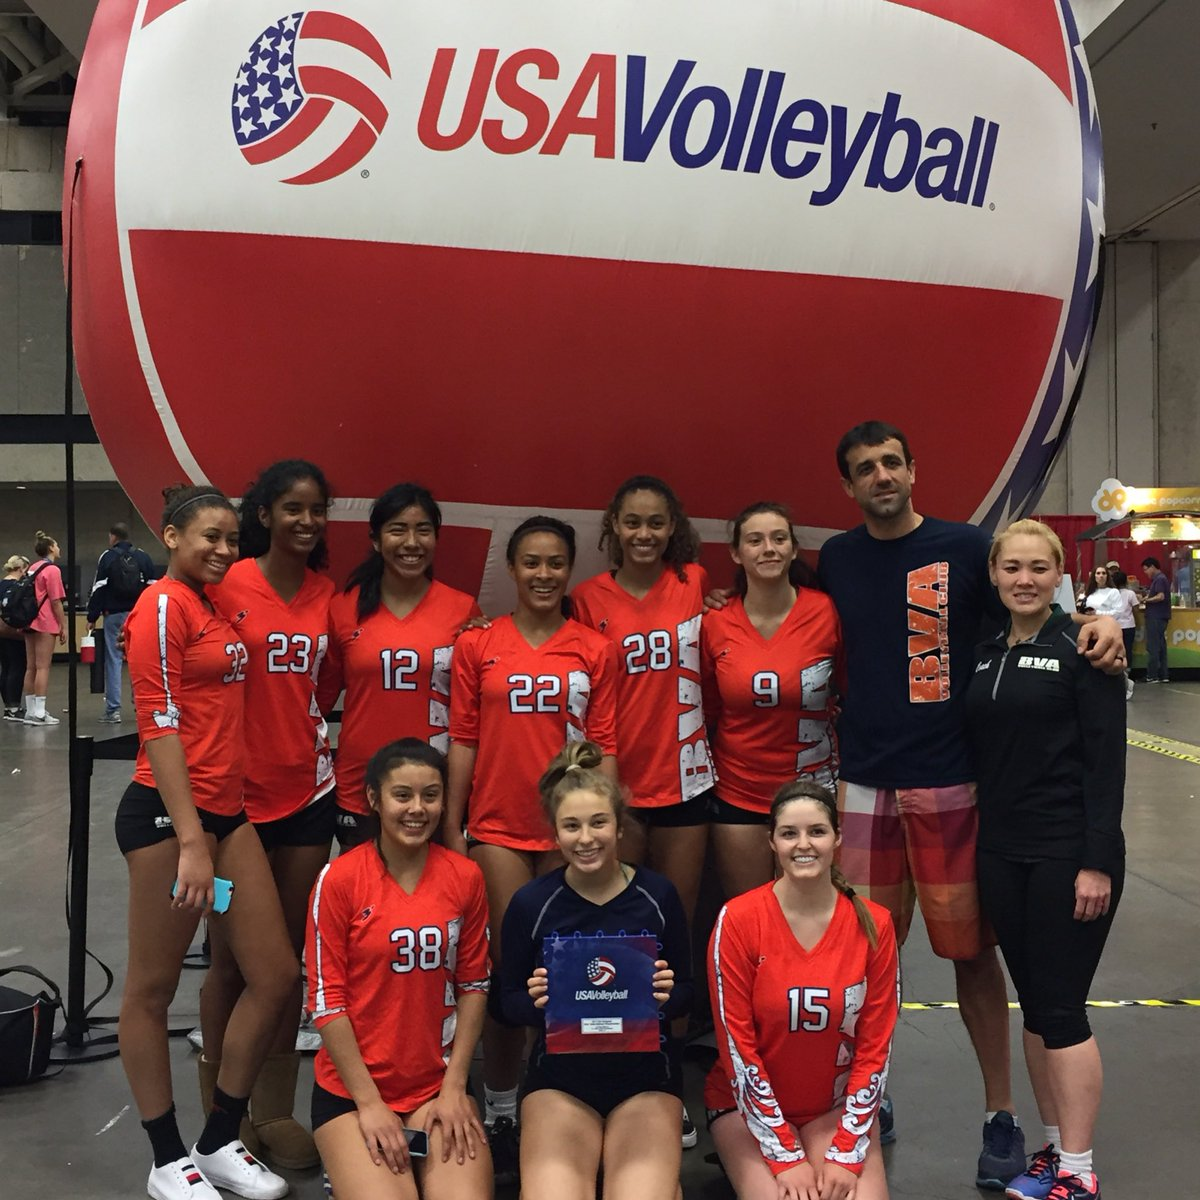 18-National - Congrats on winning your bracket at #GJNC18! You battled hard for three days &amp; we&#39;re proud of you! #bvastrong #volleyball <br>http://pic.twitter.com/40Ea63g9Ep